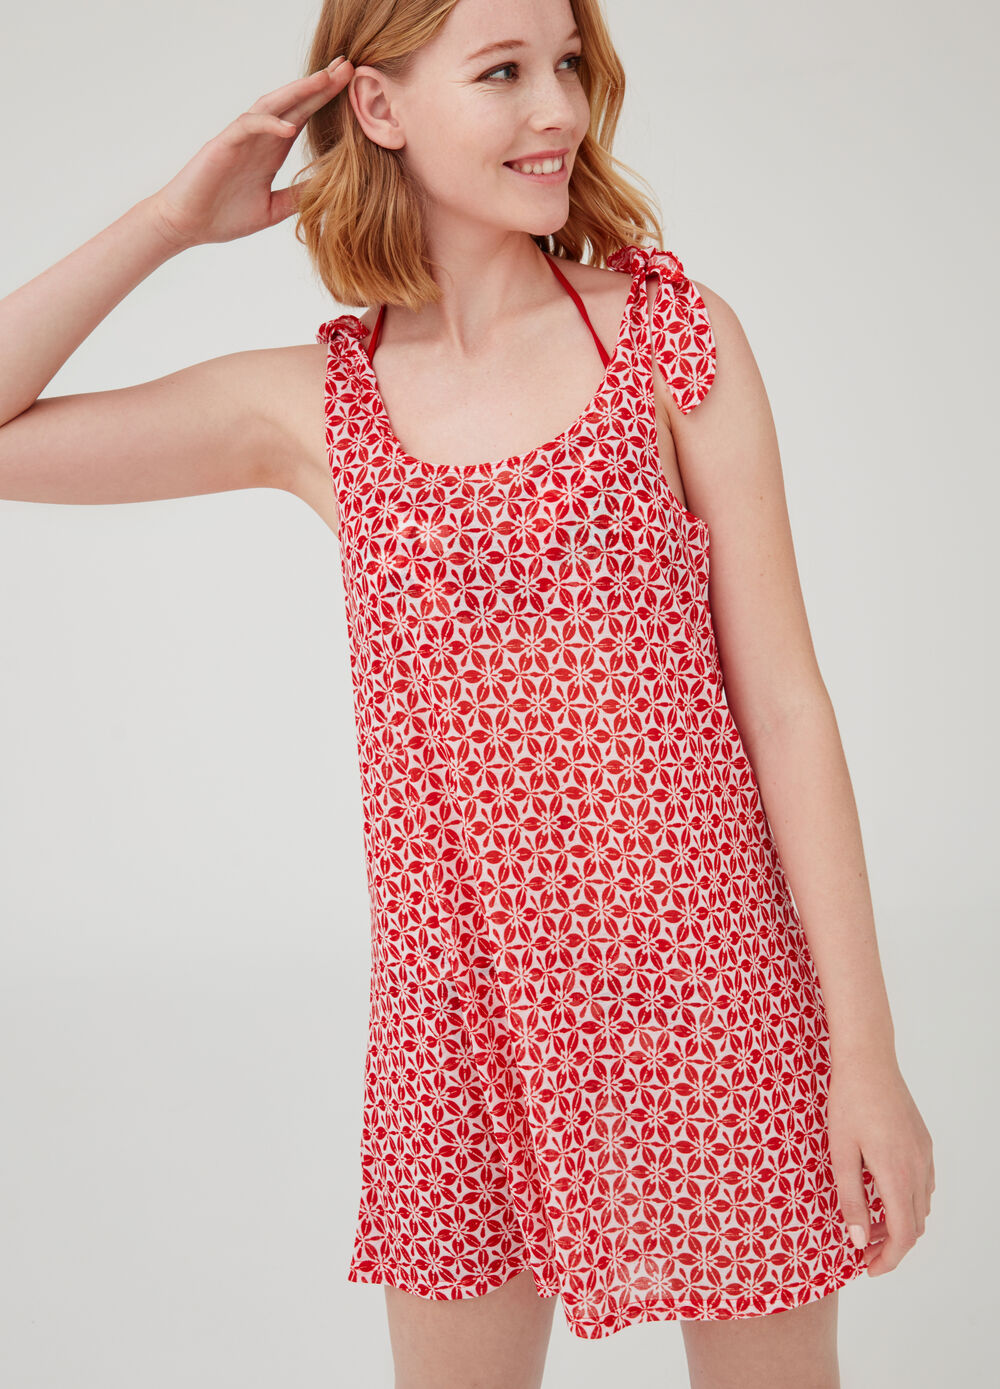 Sleeveless beach cover-up with cherry pattern